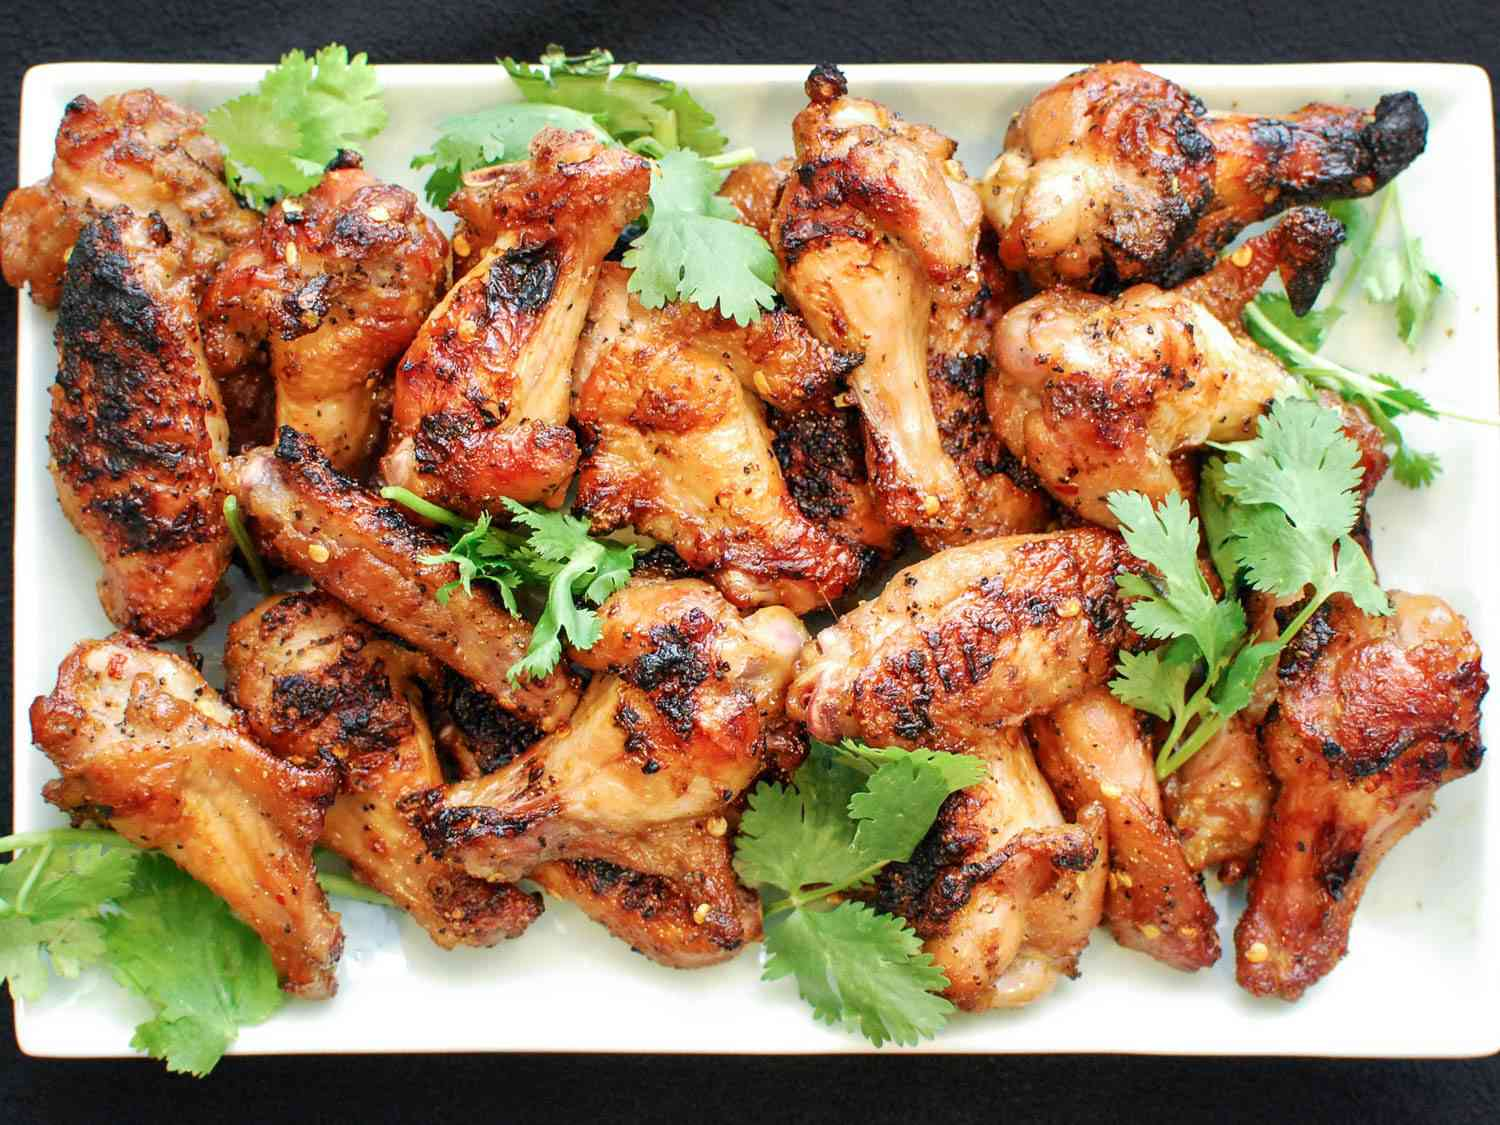 Overhead shot of a platter of grilled chicken wings with soy and fish sauce, garnished with cilantro leaves